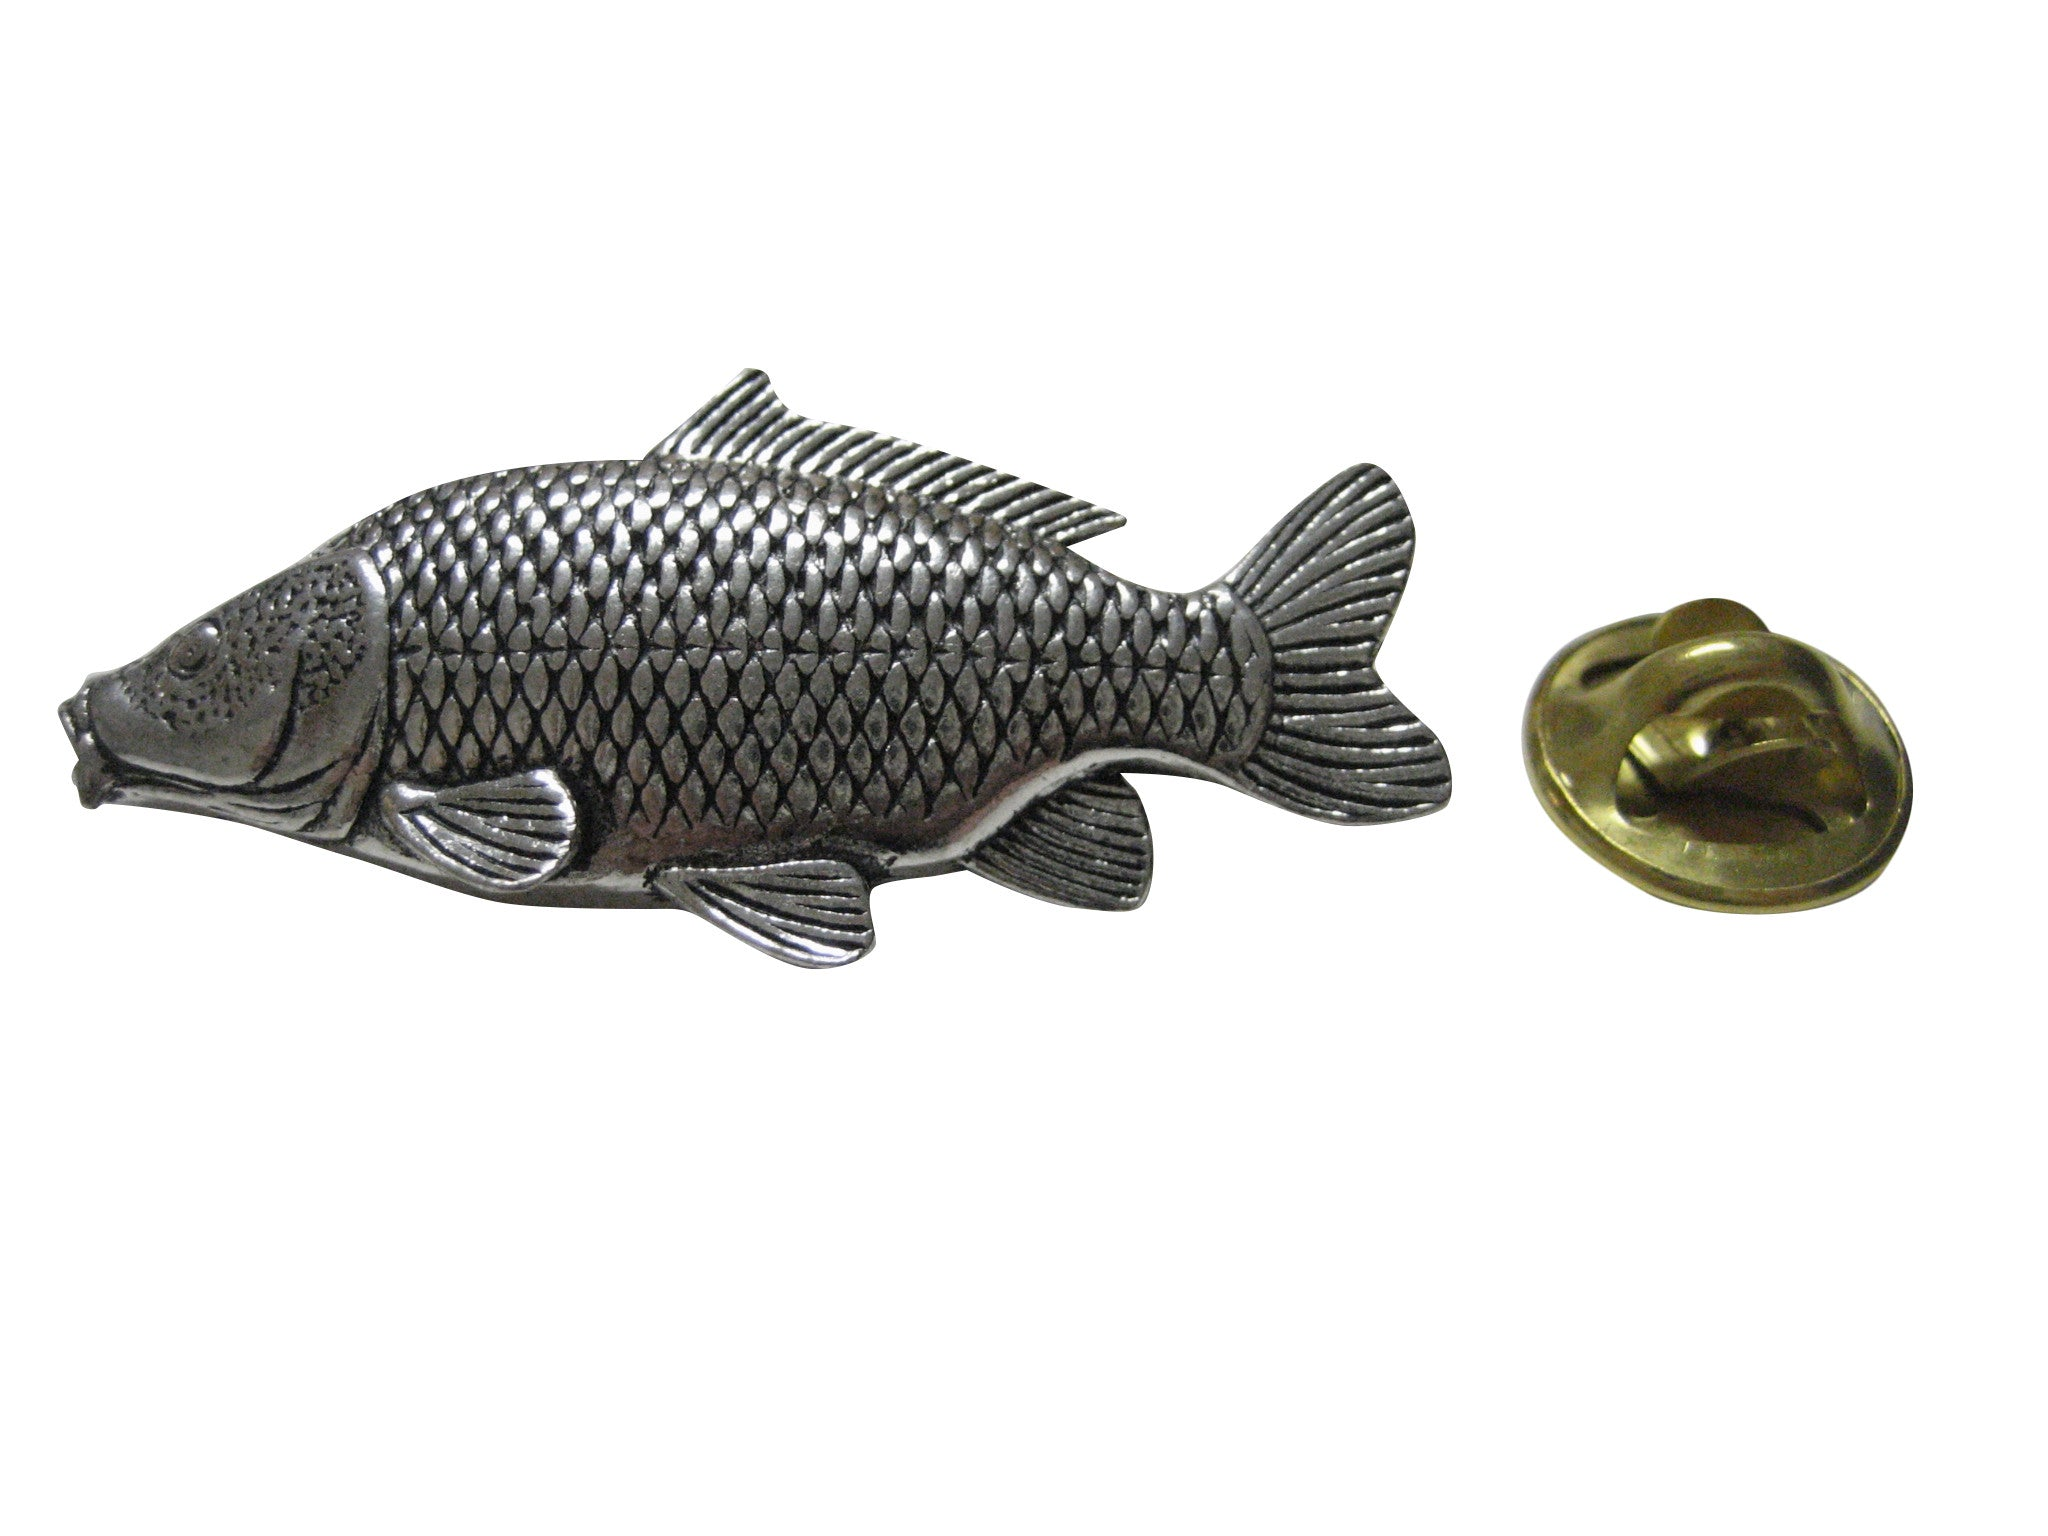 Carp Fish Lapel Pin